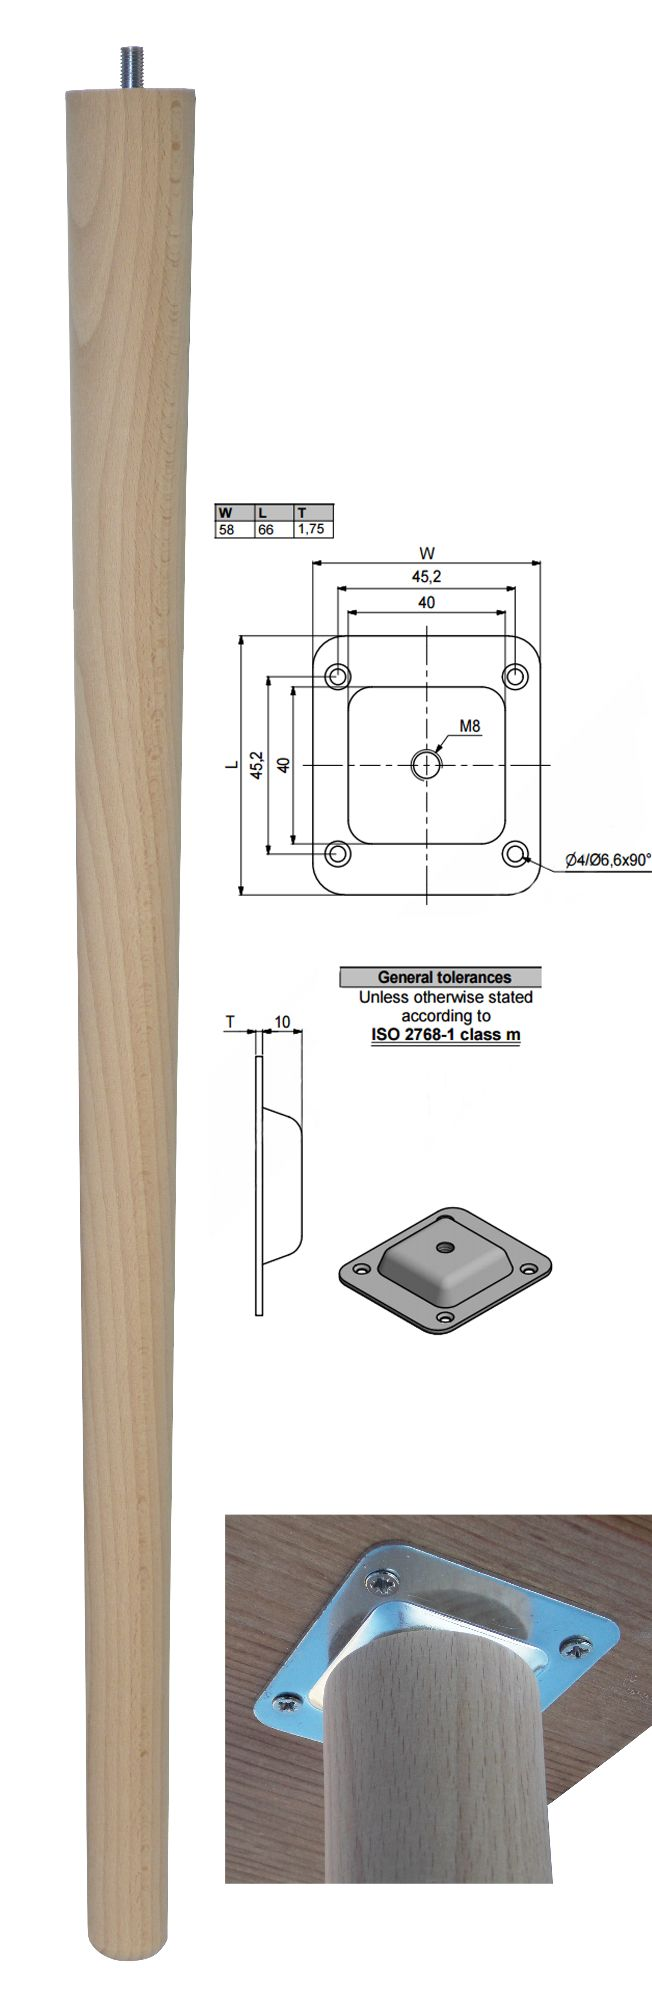 690mm Beech Tapered Leg w/ Level Fixing Plate